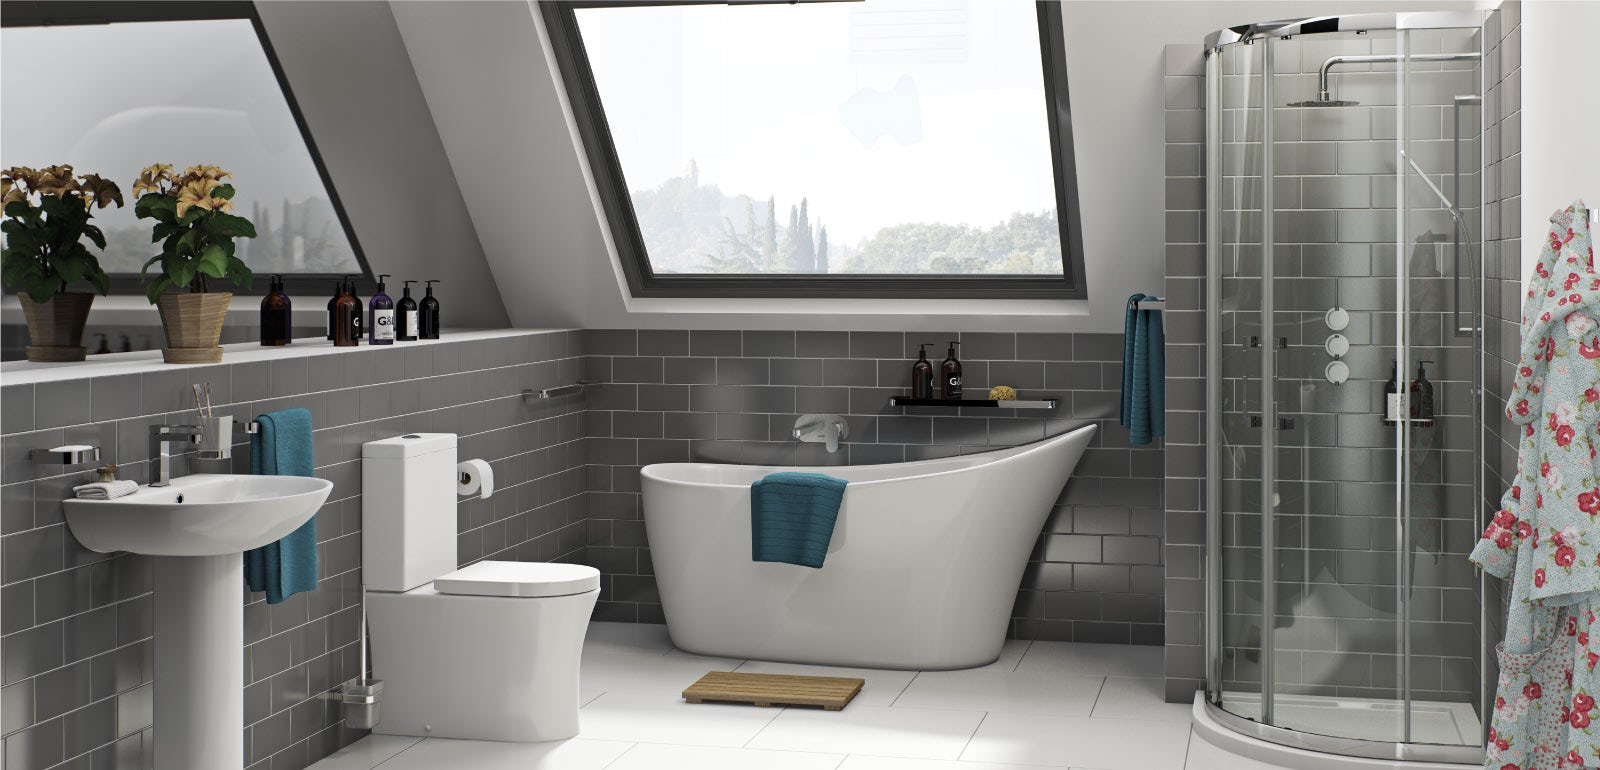 The only way is up! Live the high life with a lavish loft bathroom